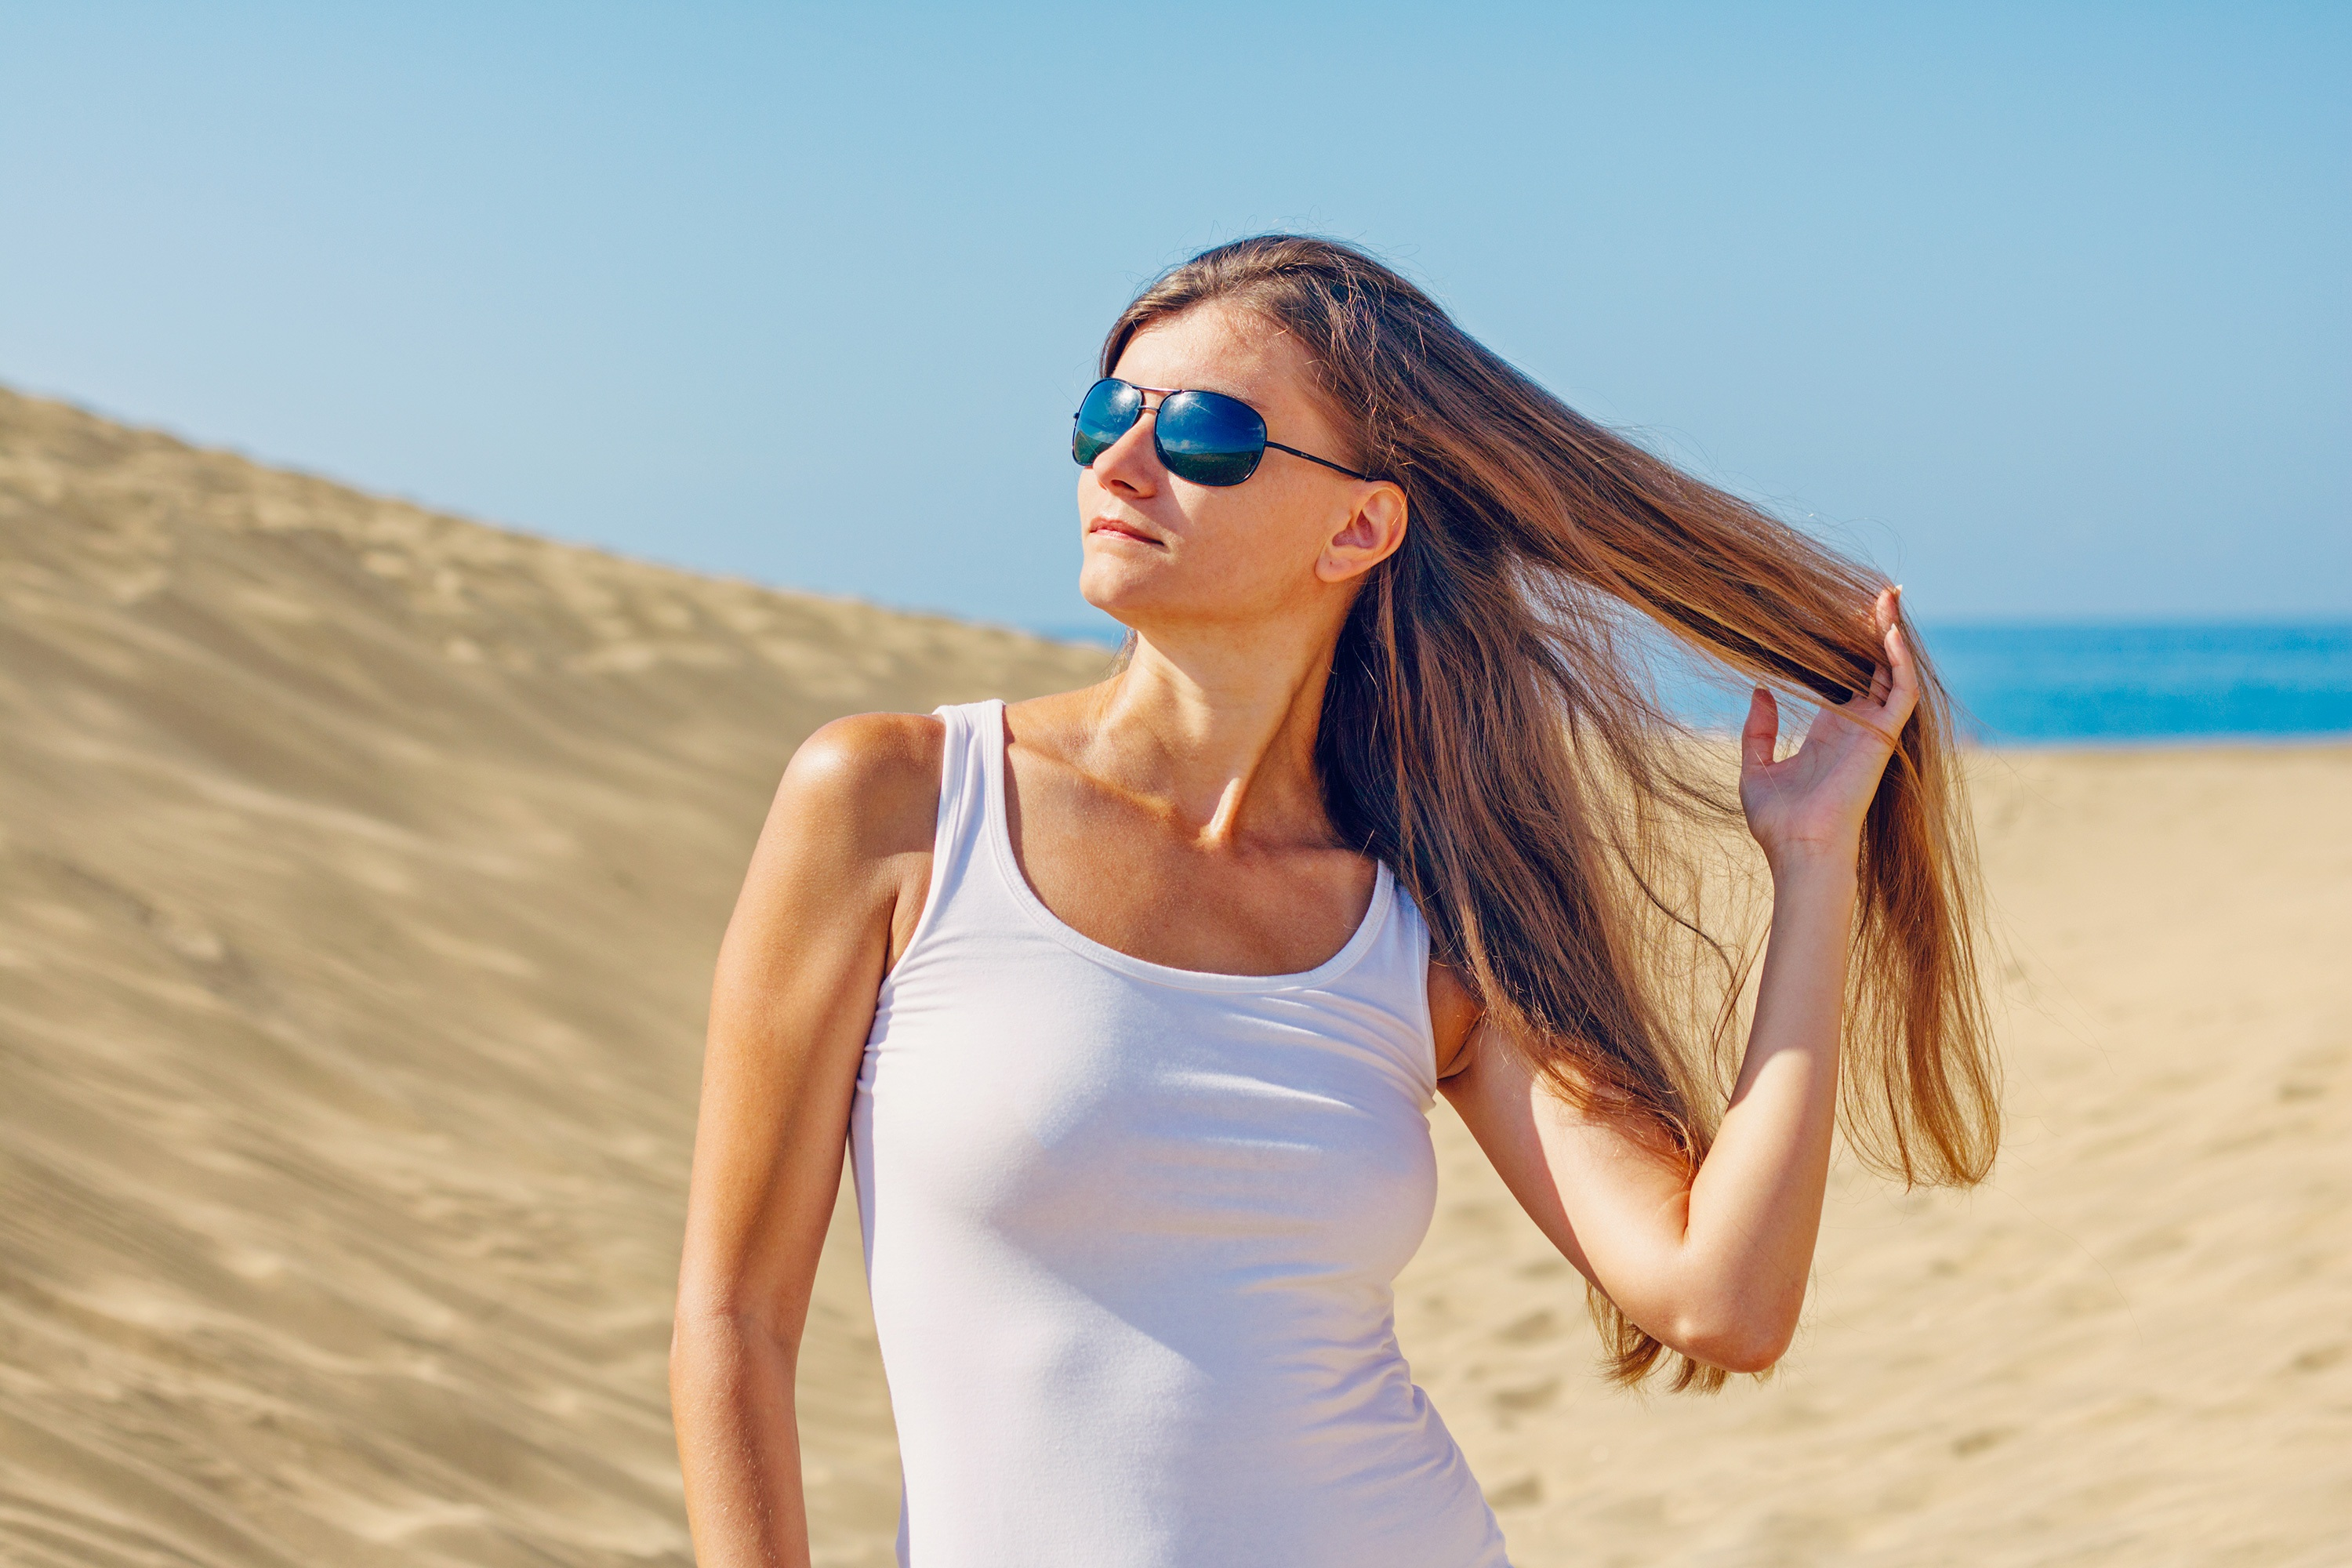 Wearing Sunglasses Pictures  woman wearing sunglasses at beach free stock photo